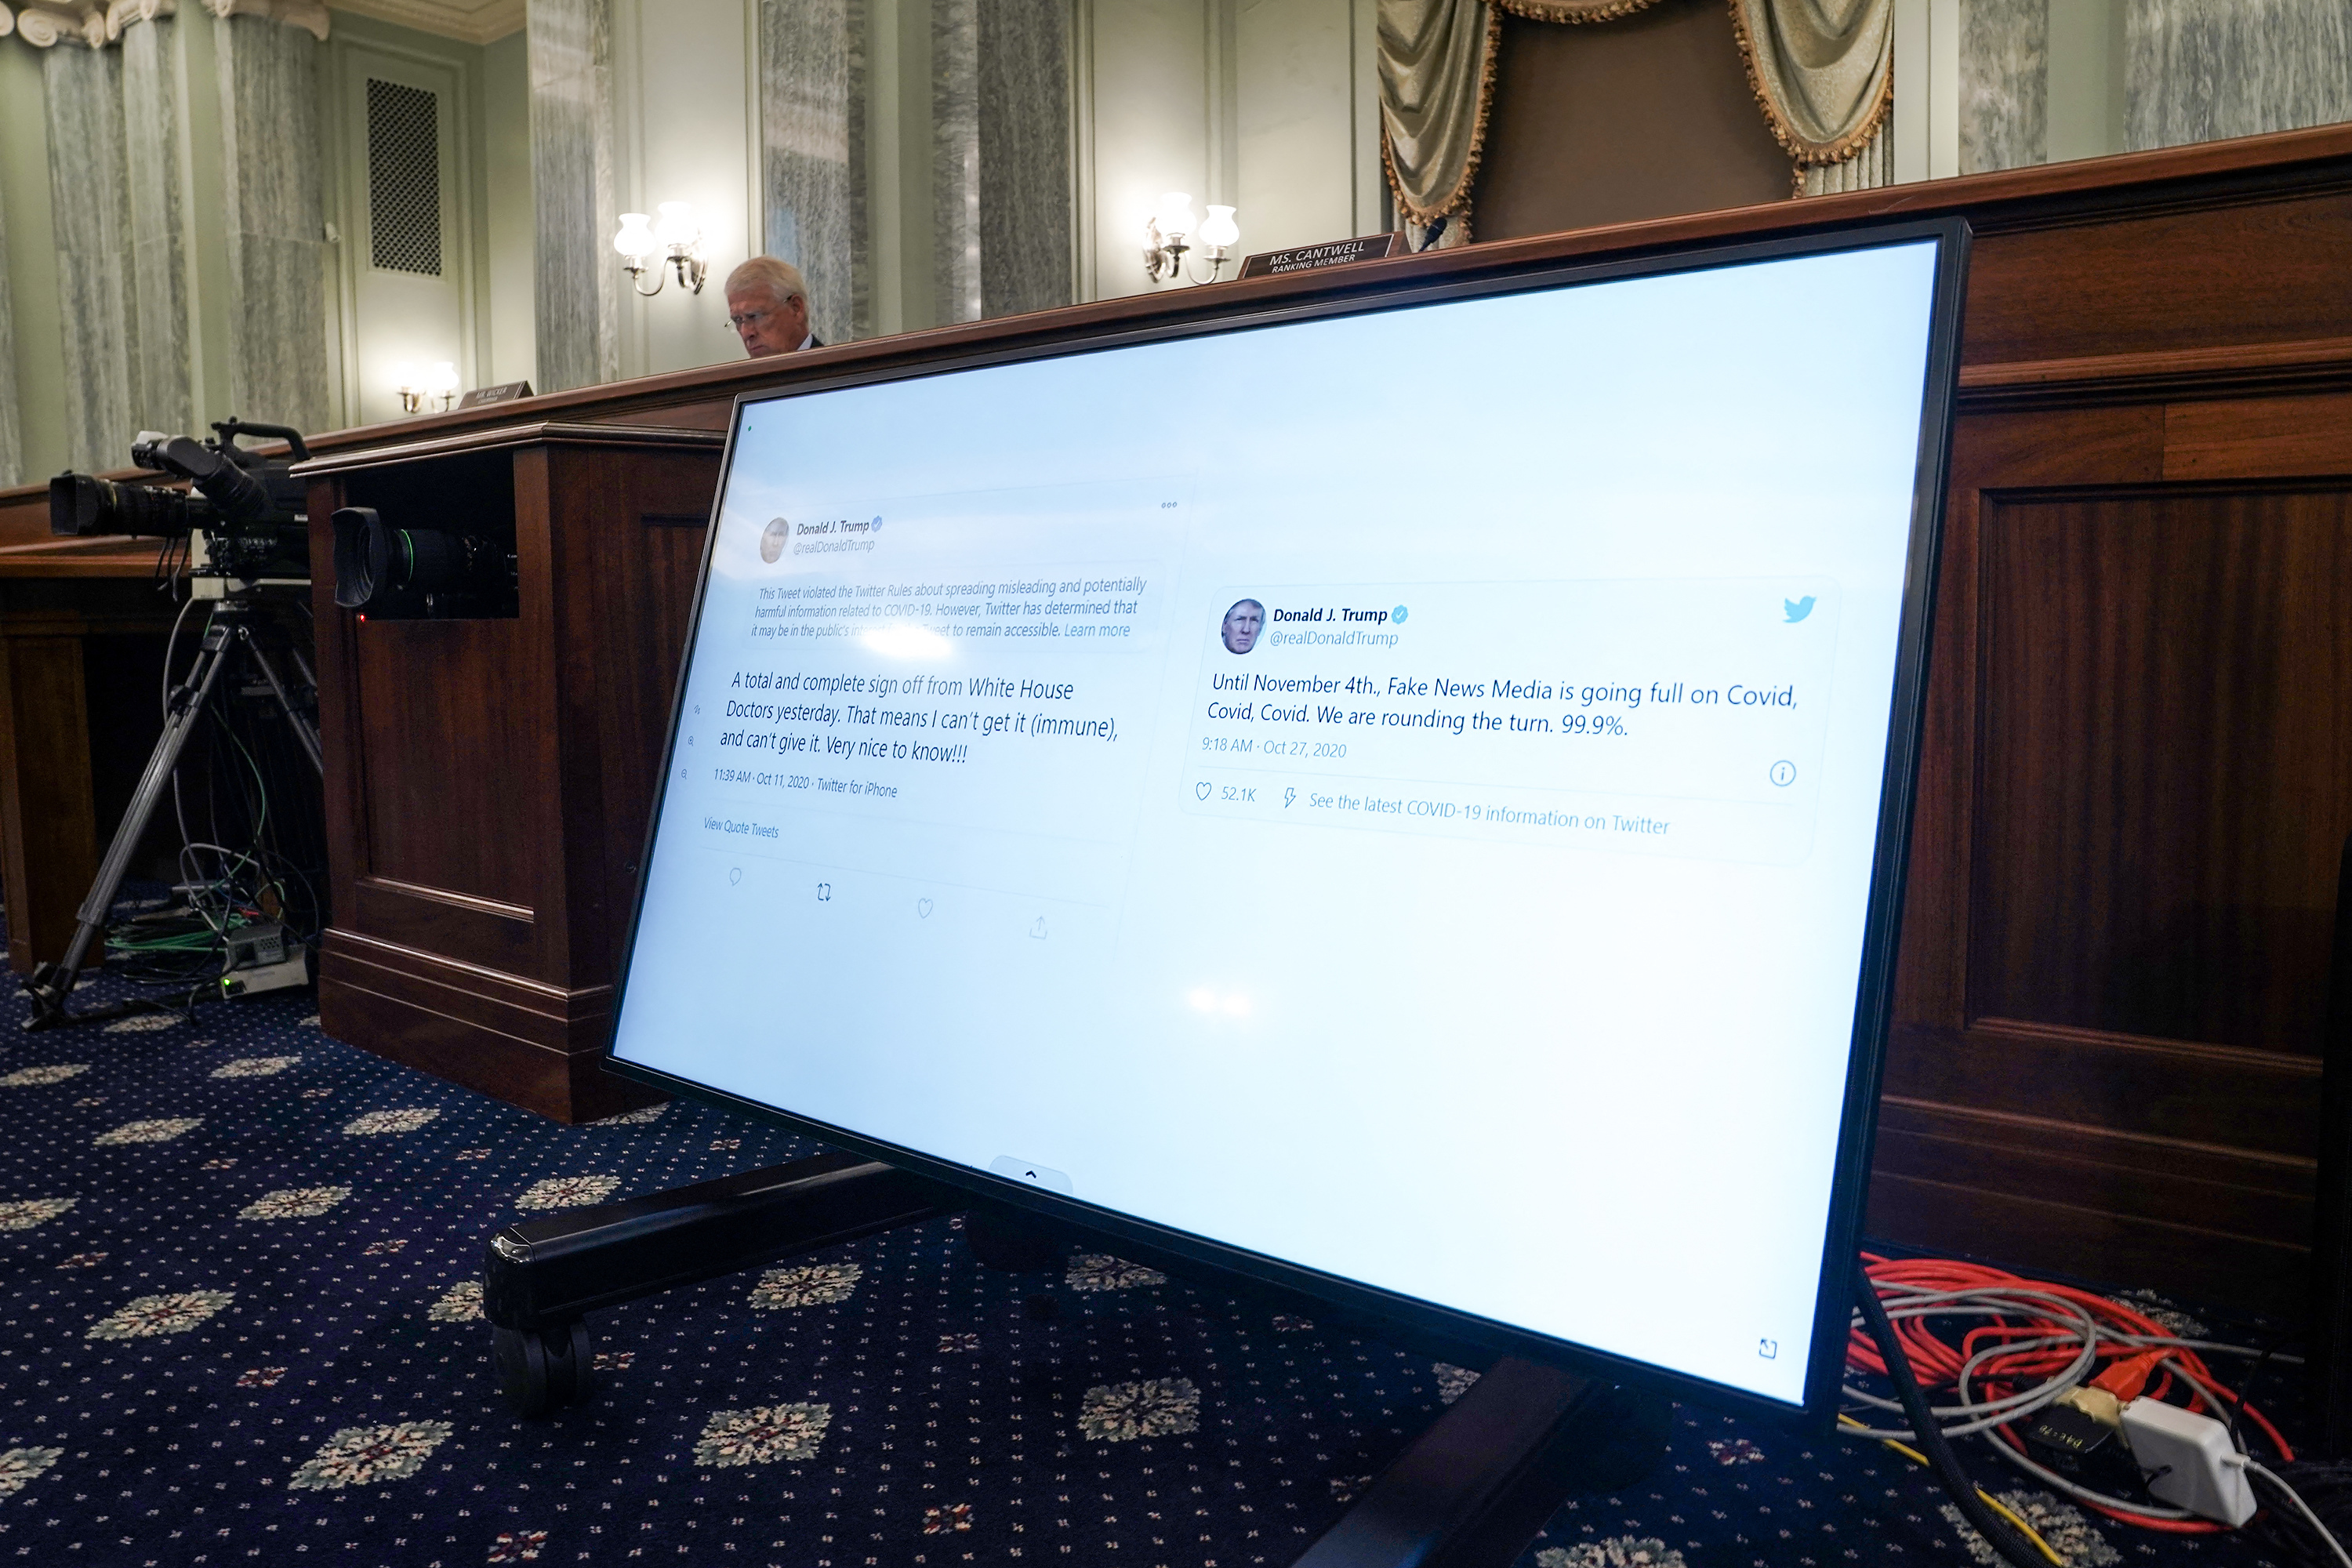 Tweets from President Donald Trump are seen as Sen. Tammy Baldwin (D-Wis.) asks questions during a Senate Commerce, Science, and Transportation Committee hearing to discuss reforming Section 230 of the Communications Decency Act with big tech companies on Wednesday, October 28, 2020. Photo by Greg Nash/Pool/ABACAPRESS.COM